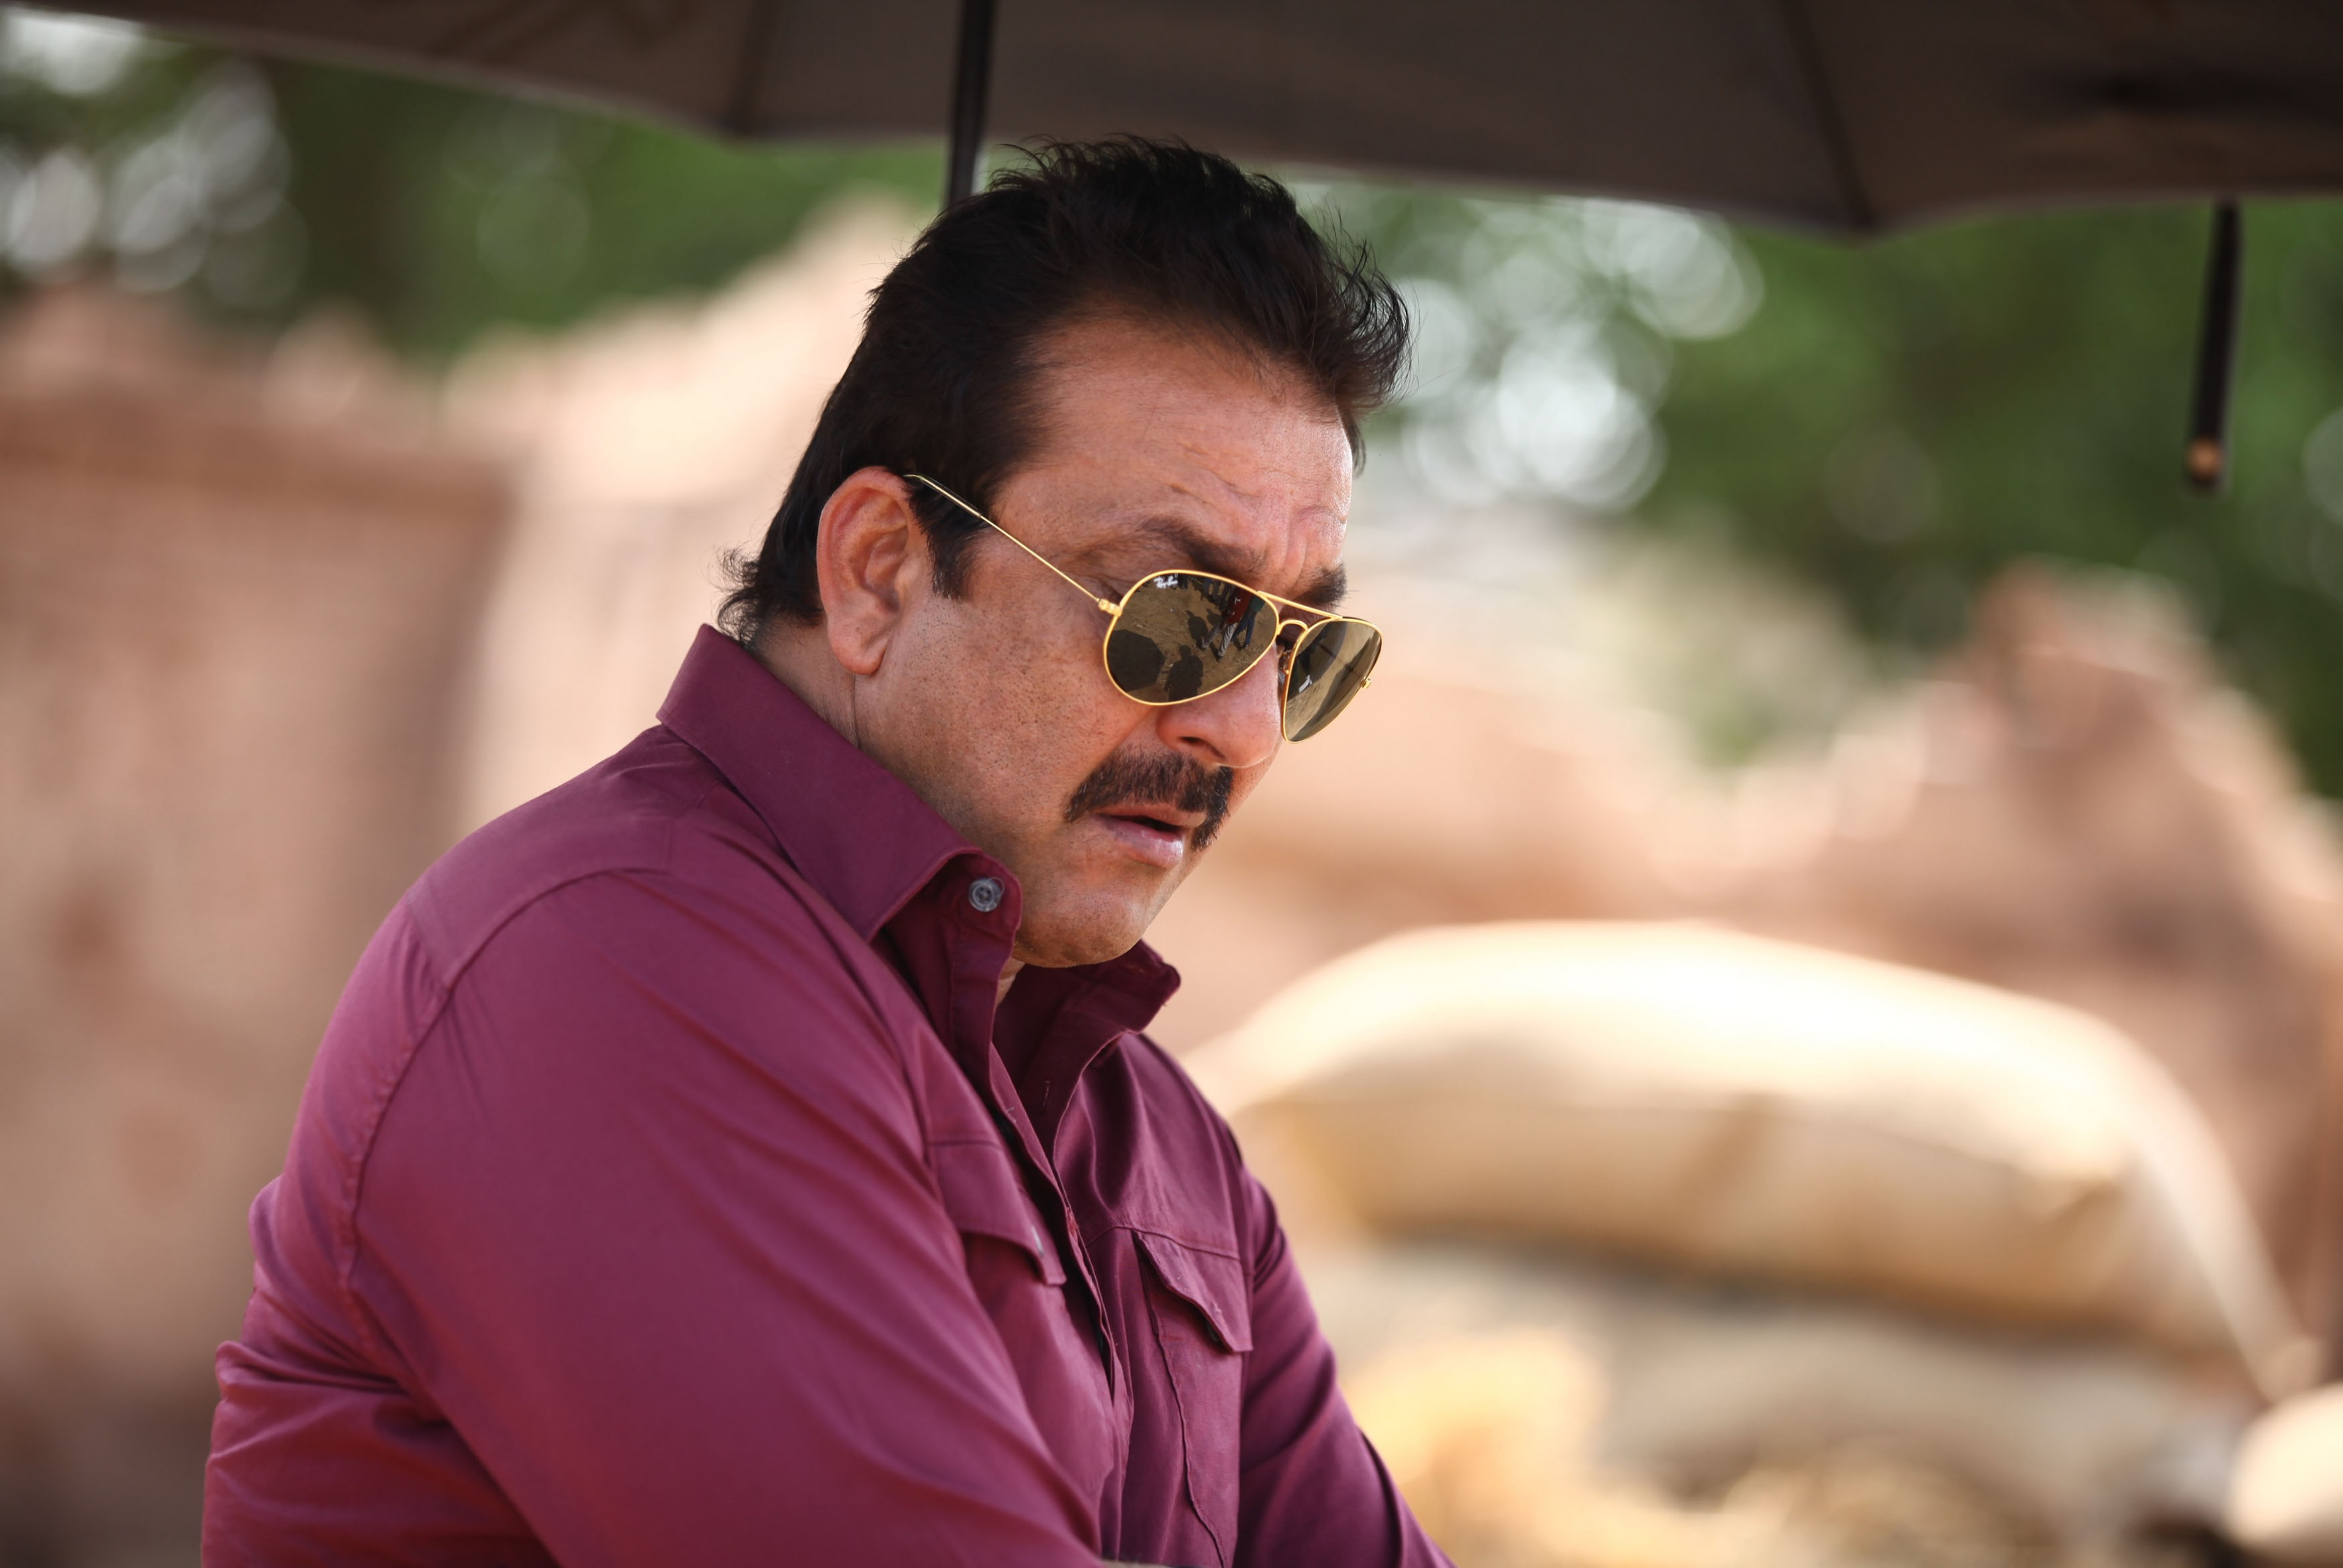 Sanjay Dutt Movies, News, Songs & Images - Bollywood Hungama